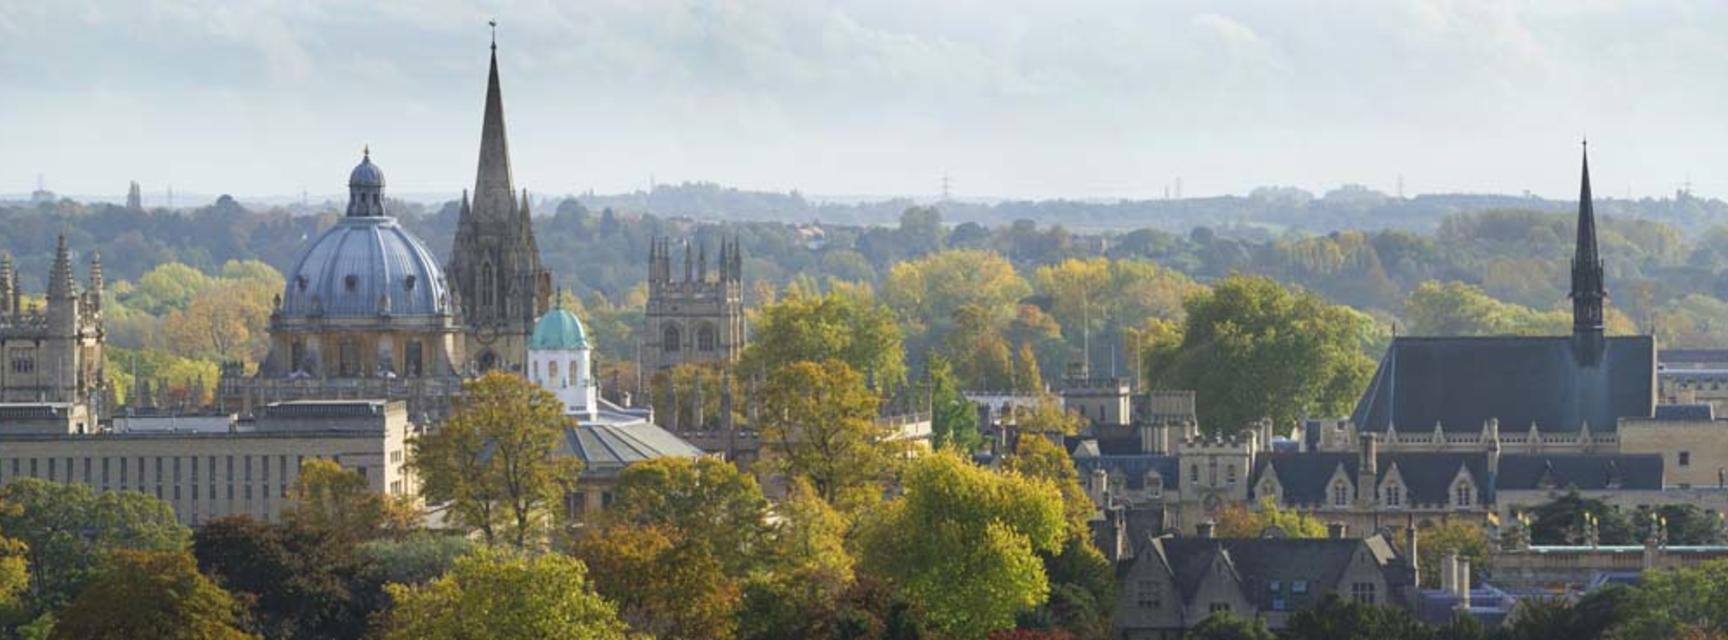 Photo of the Oxford spires